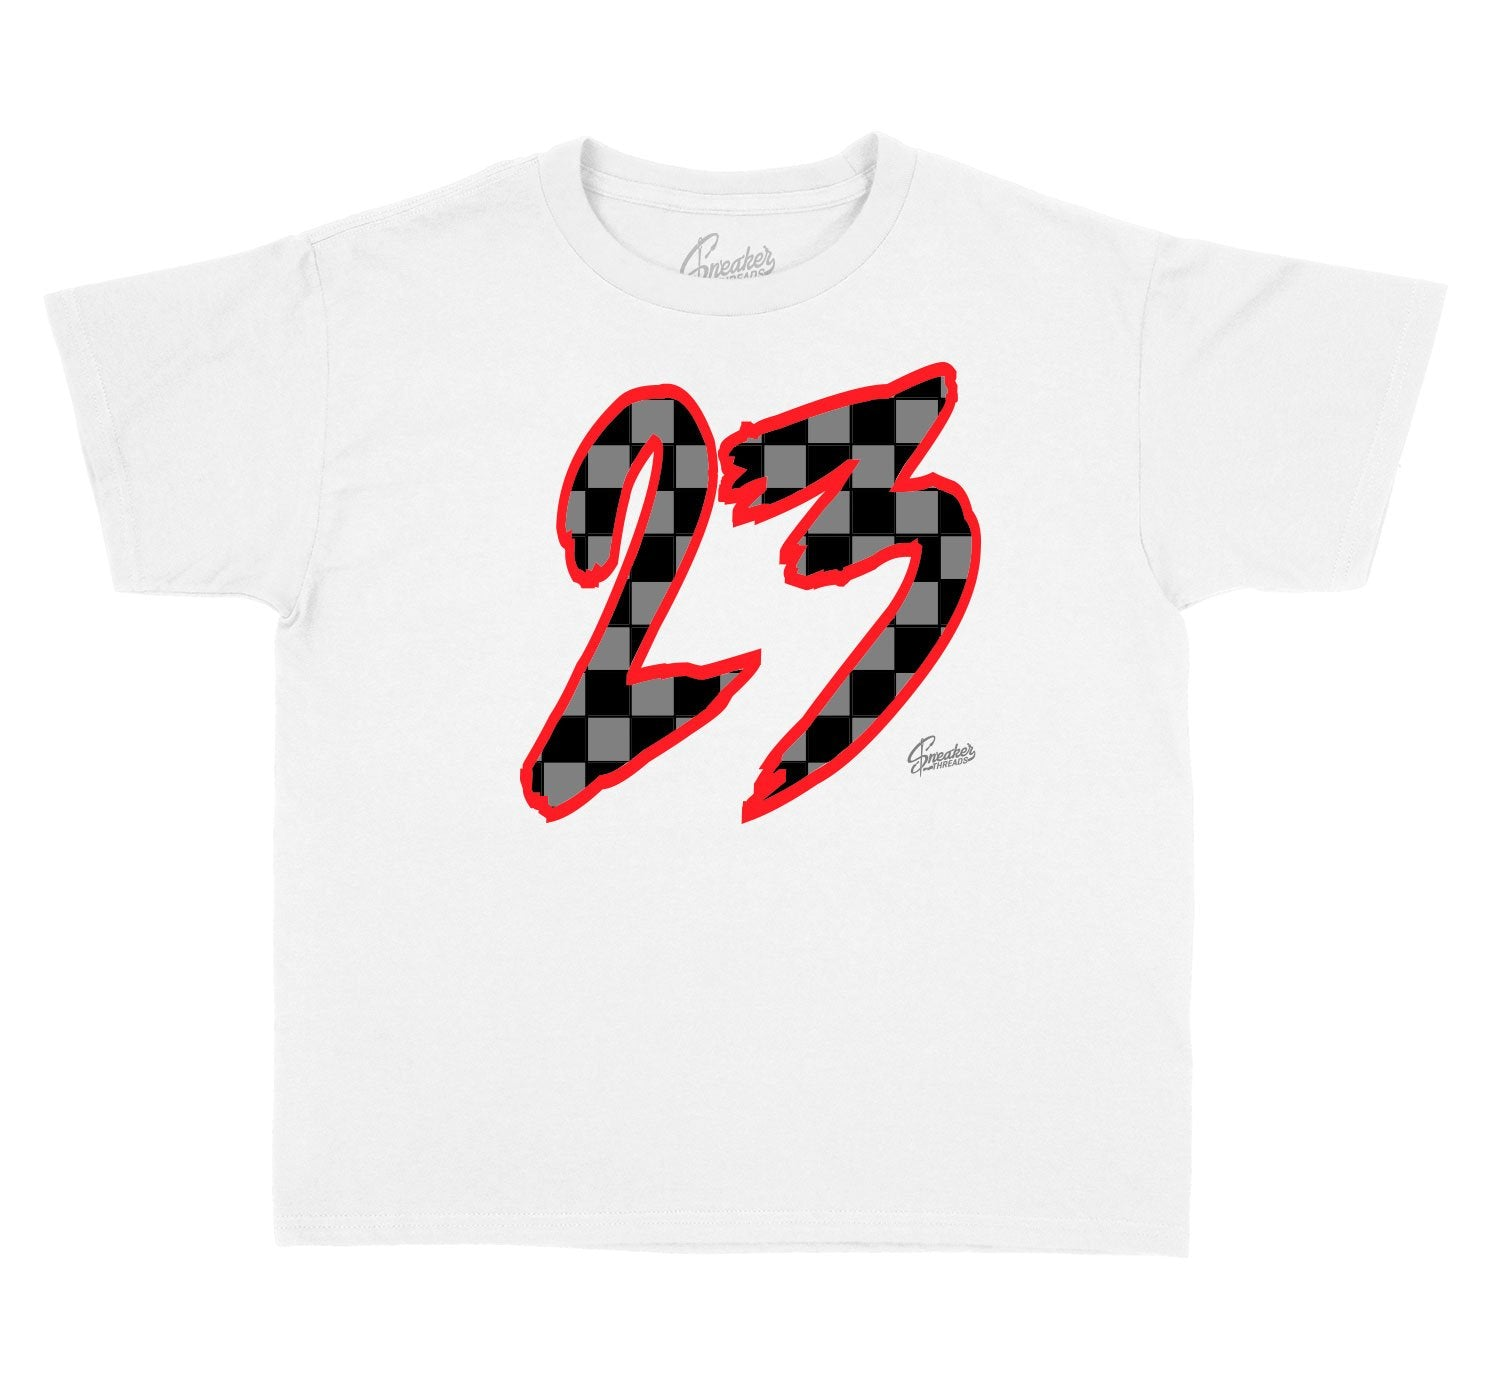 Collection of shirts for kids designed to match the Jordan 12 dark grey sneakers